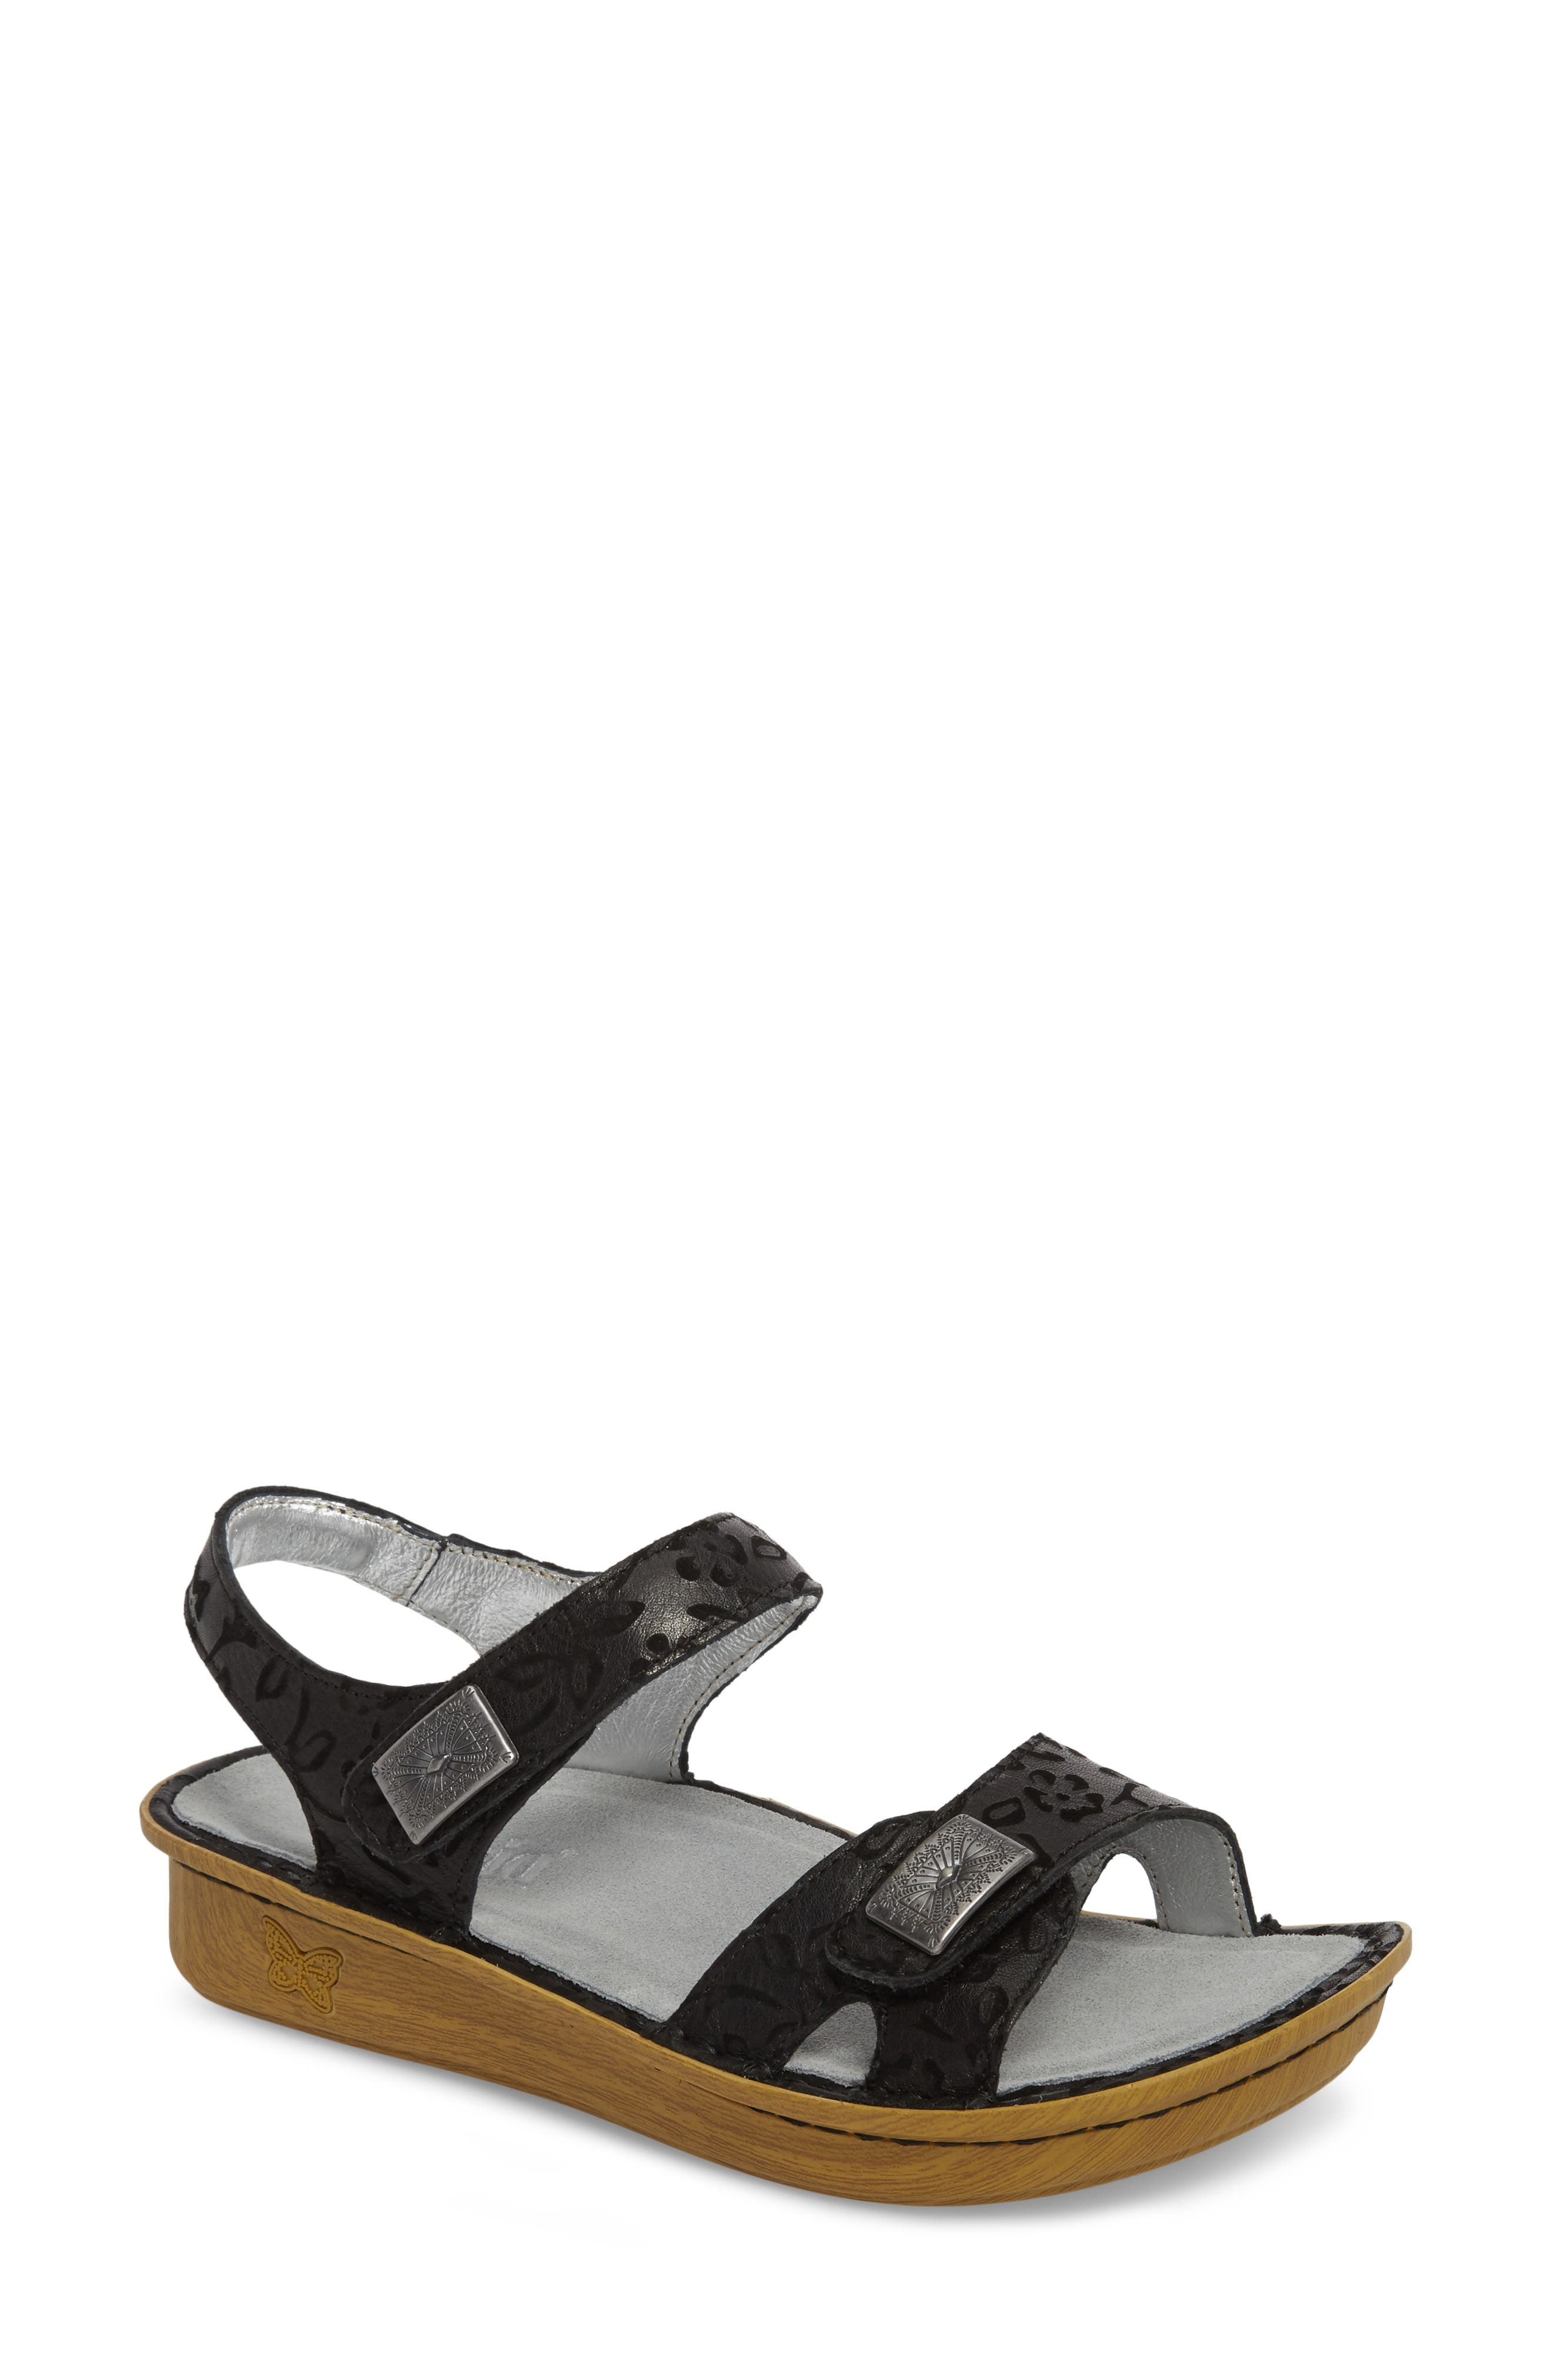 ALEGRIA, Vienna Sandal, Main thumbnail 1, color, MORNING GLORY BLACK LEATHER